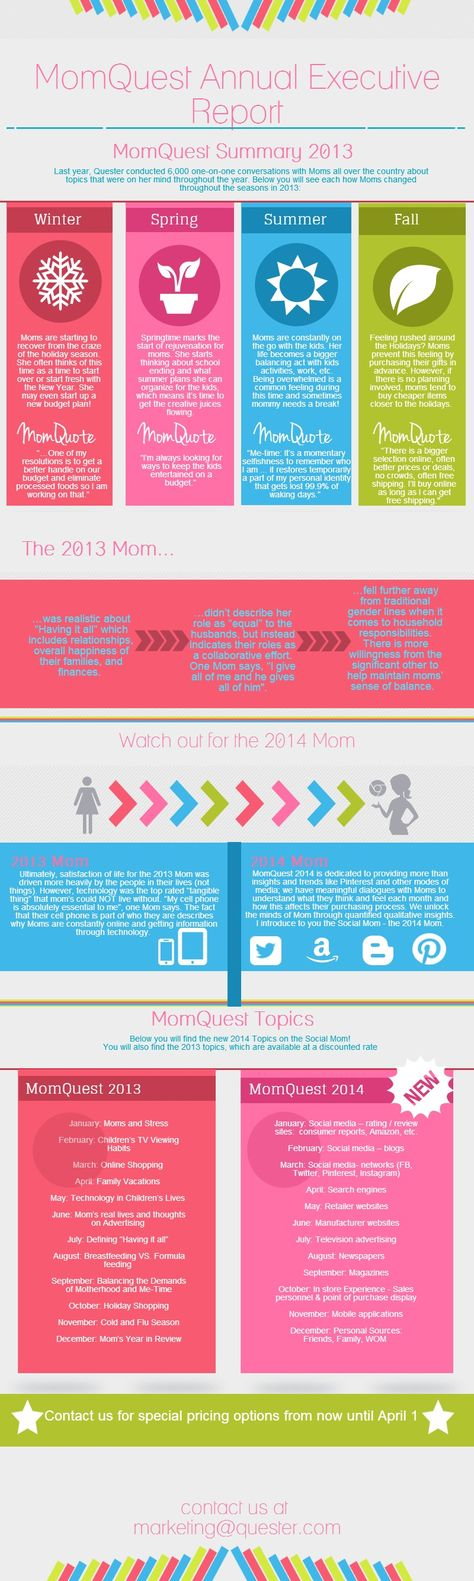 MomQuest Annual Executive Report #infographic report created in - executive report template